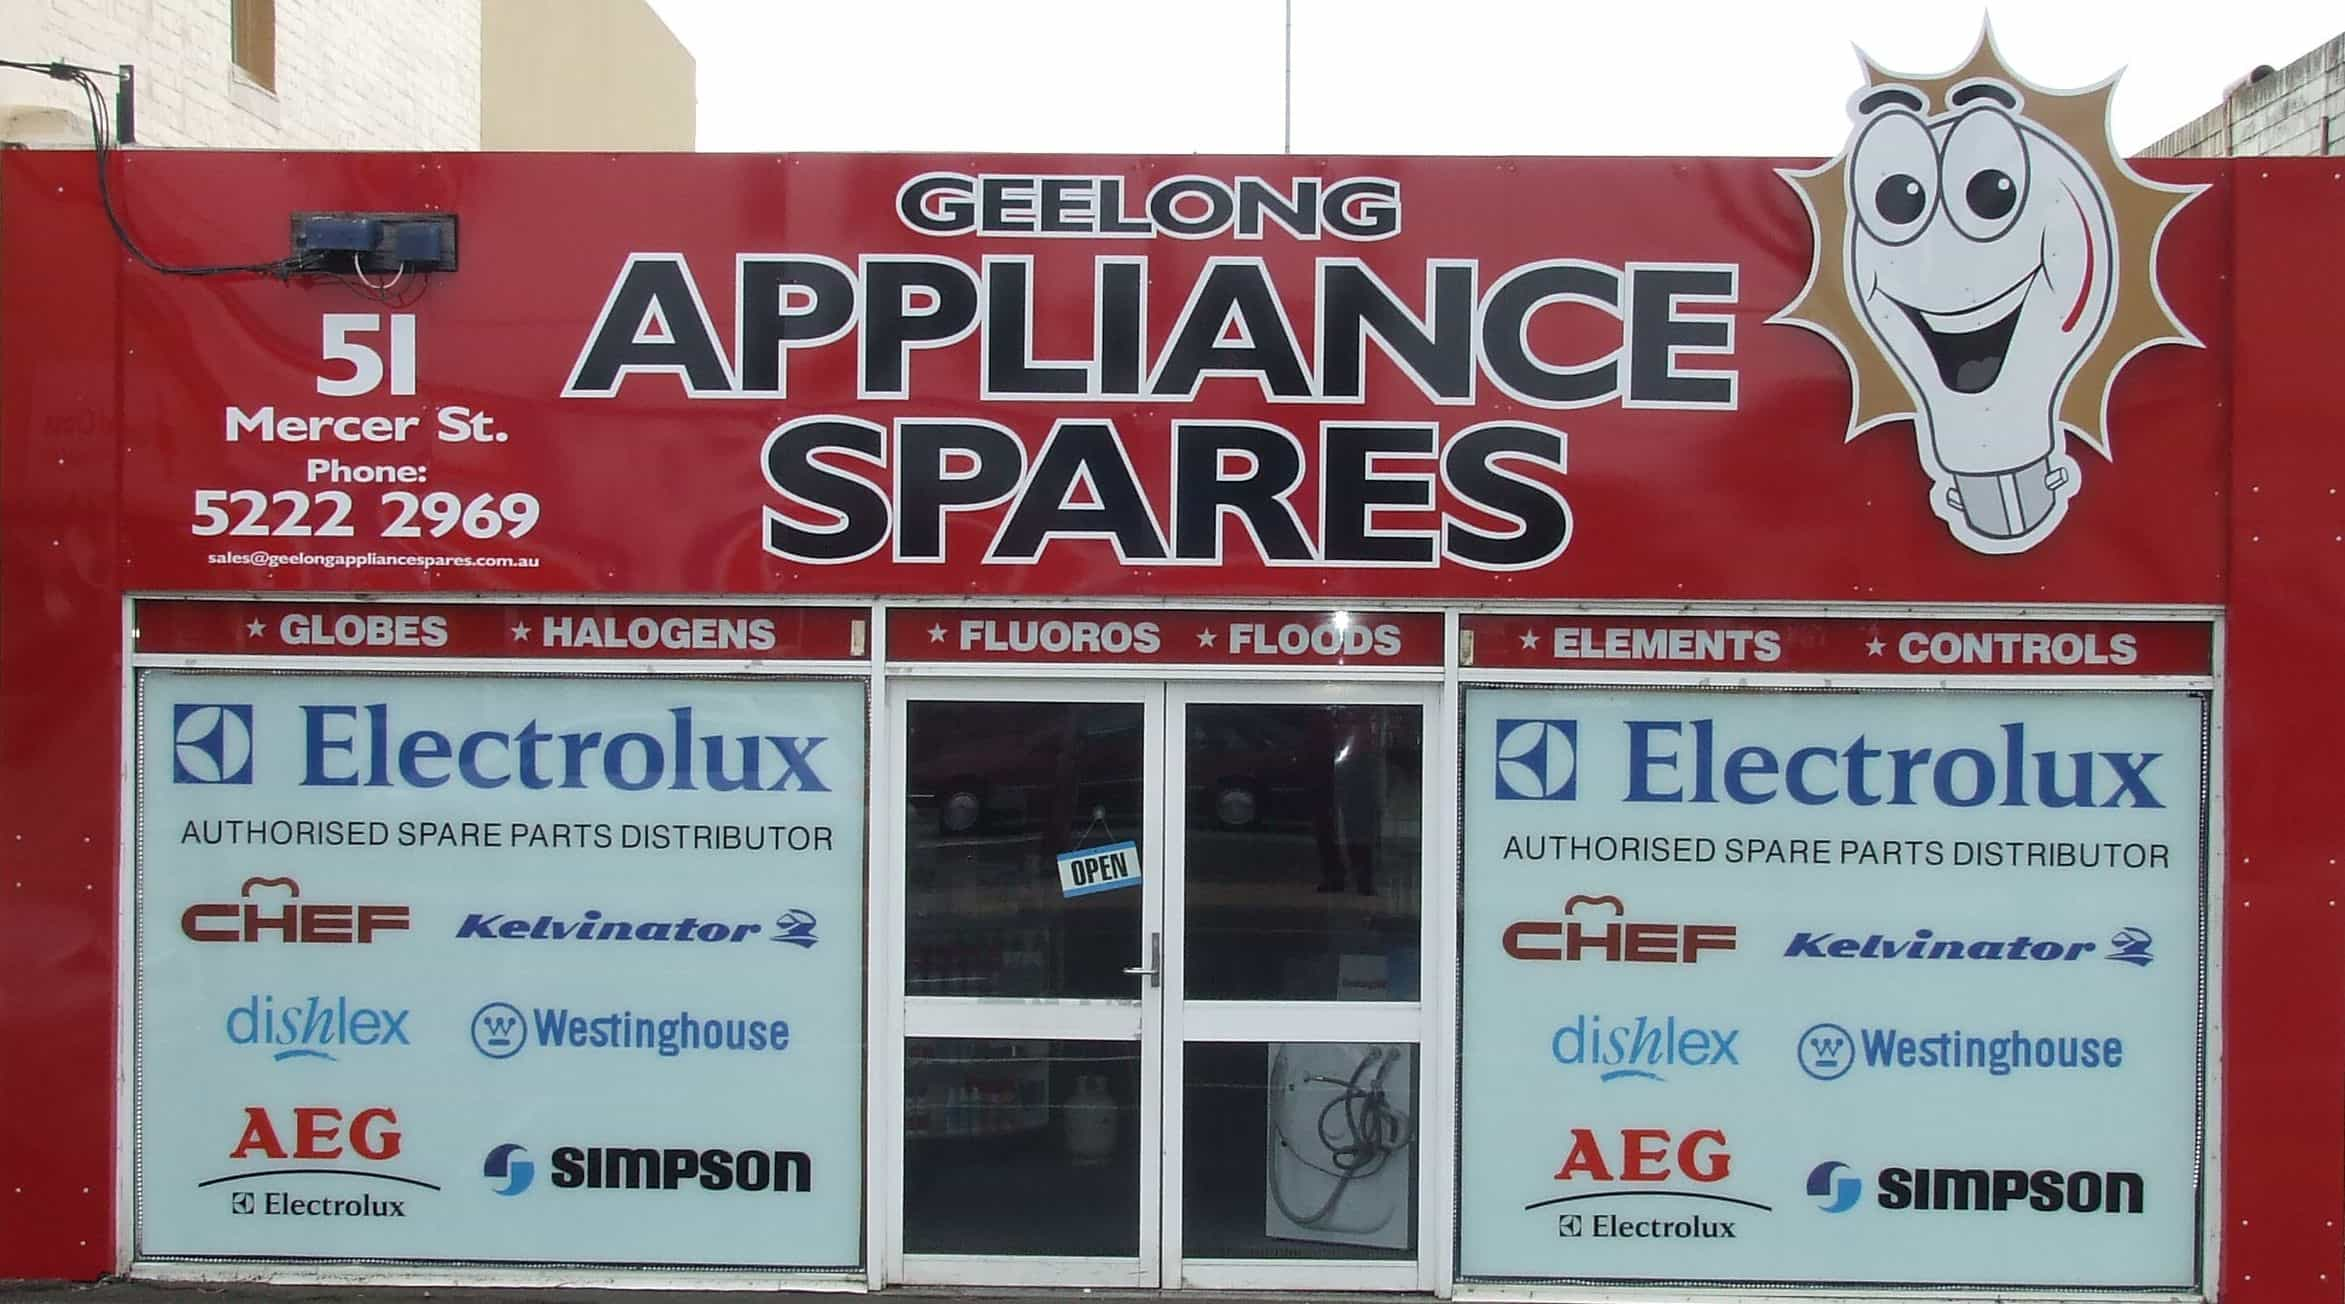 Geelong appliances spares